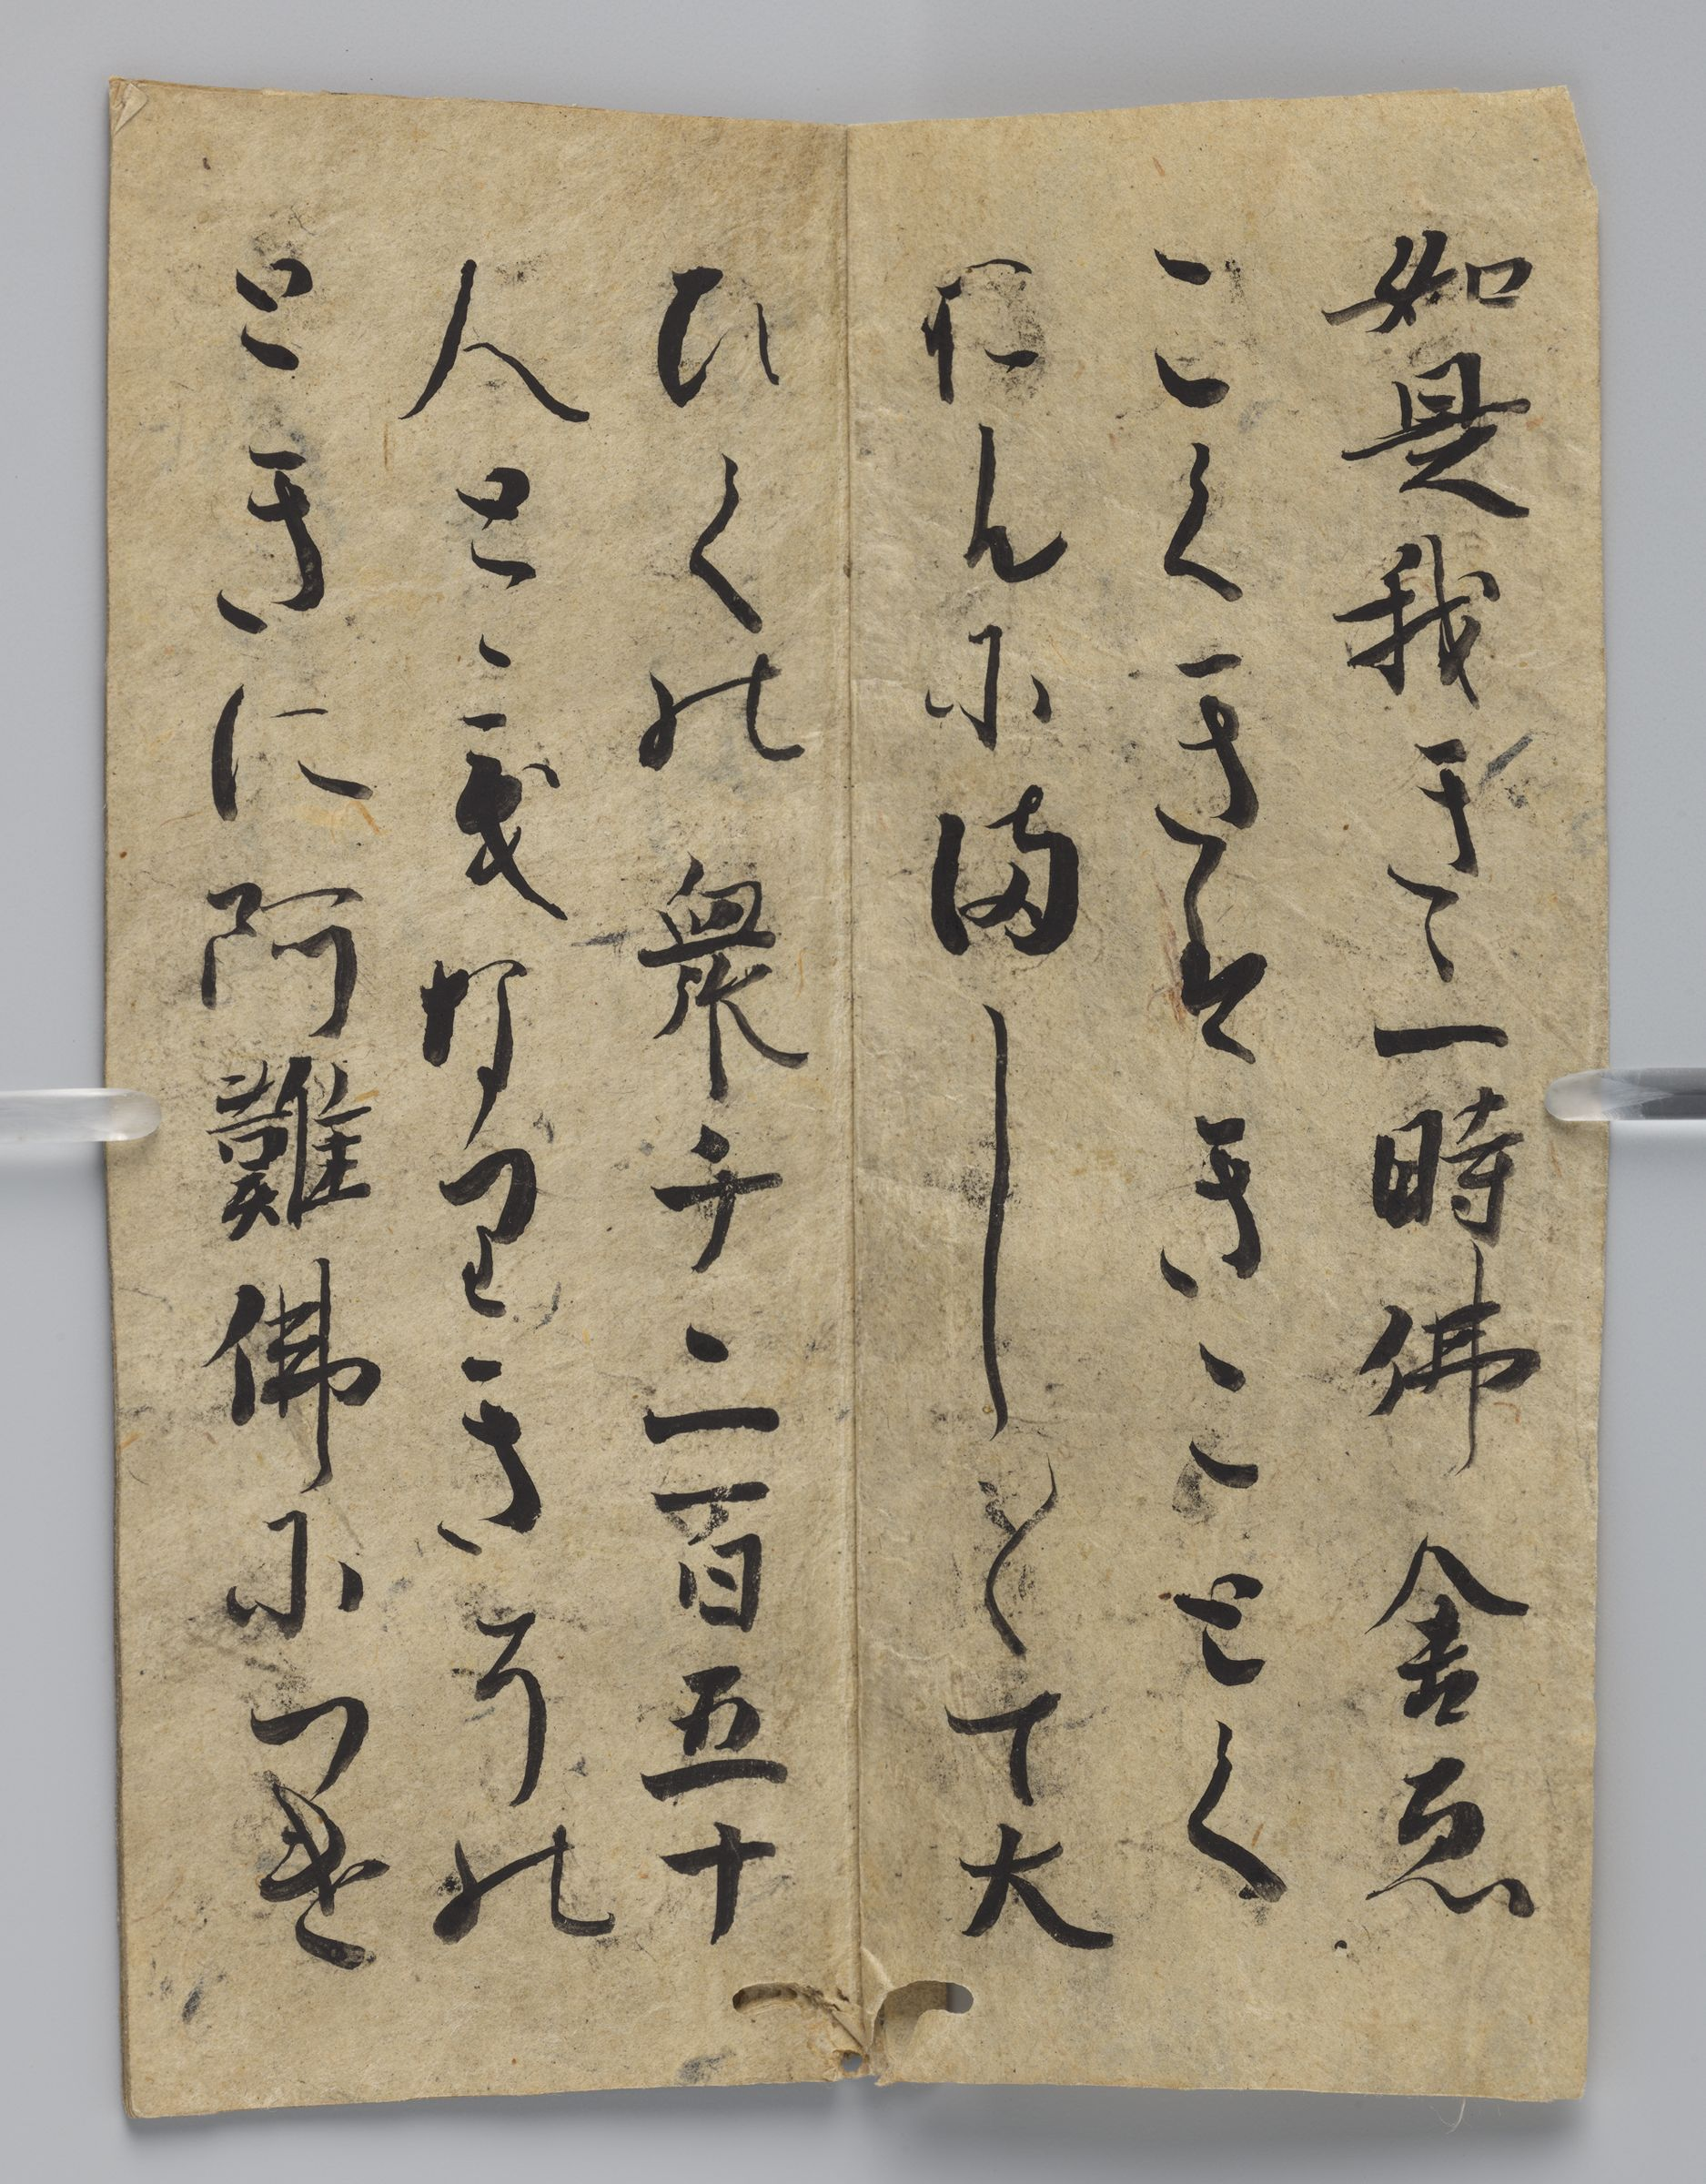 Non-Canonical Sutra Booklet Without Title Page (Text Begins